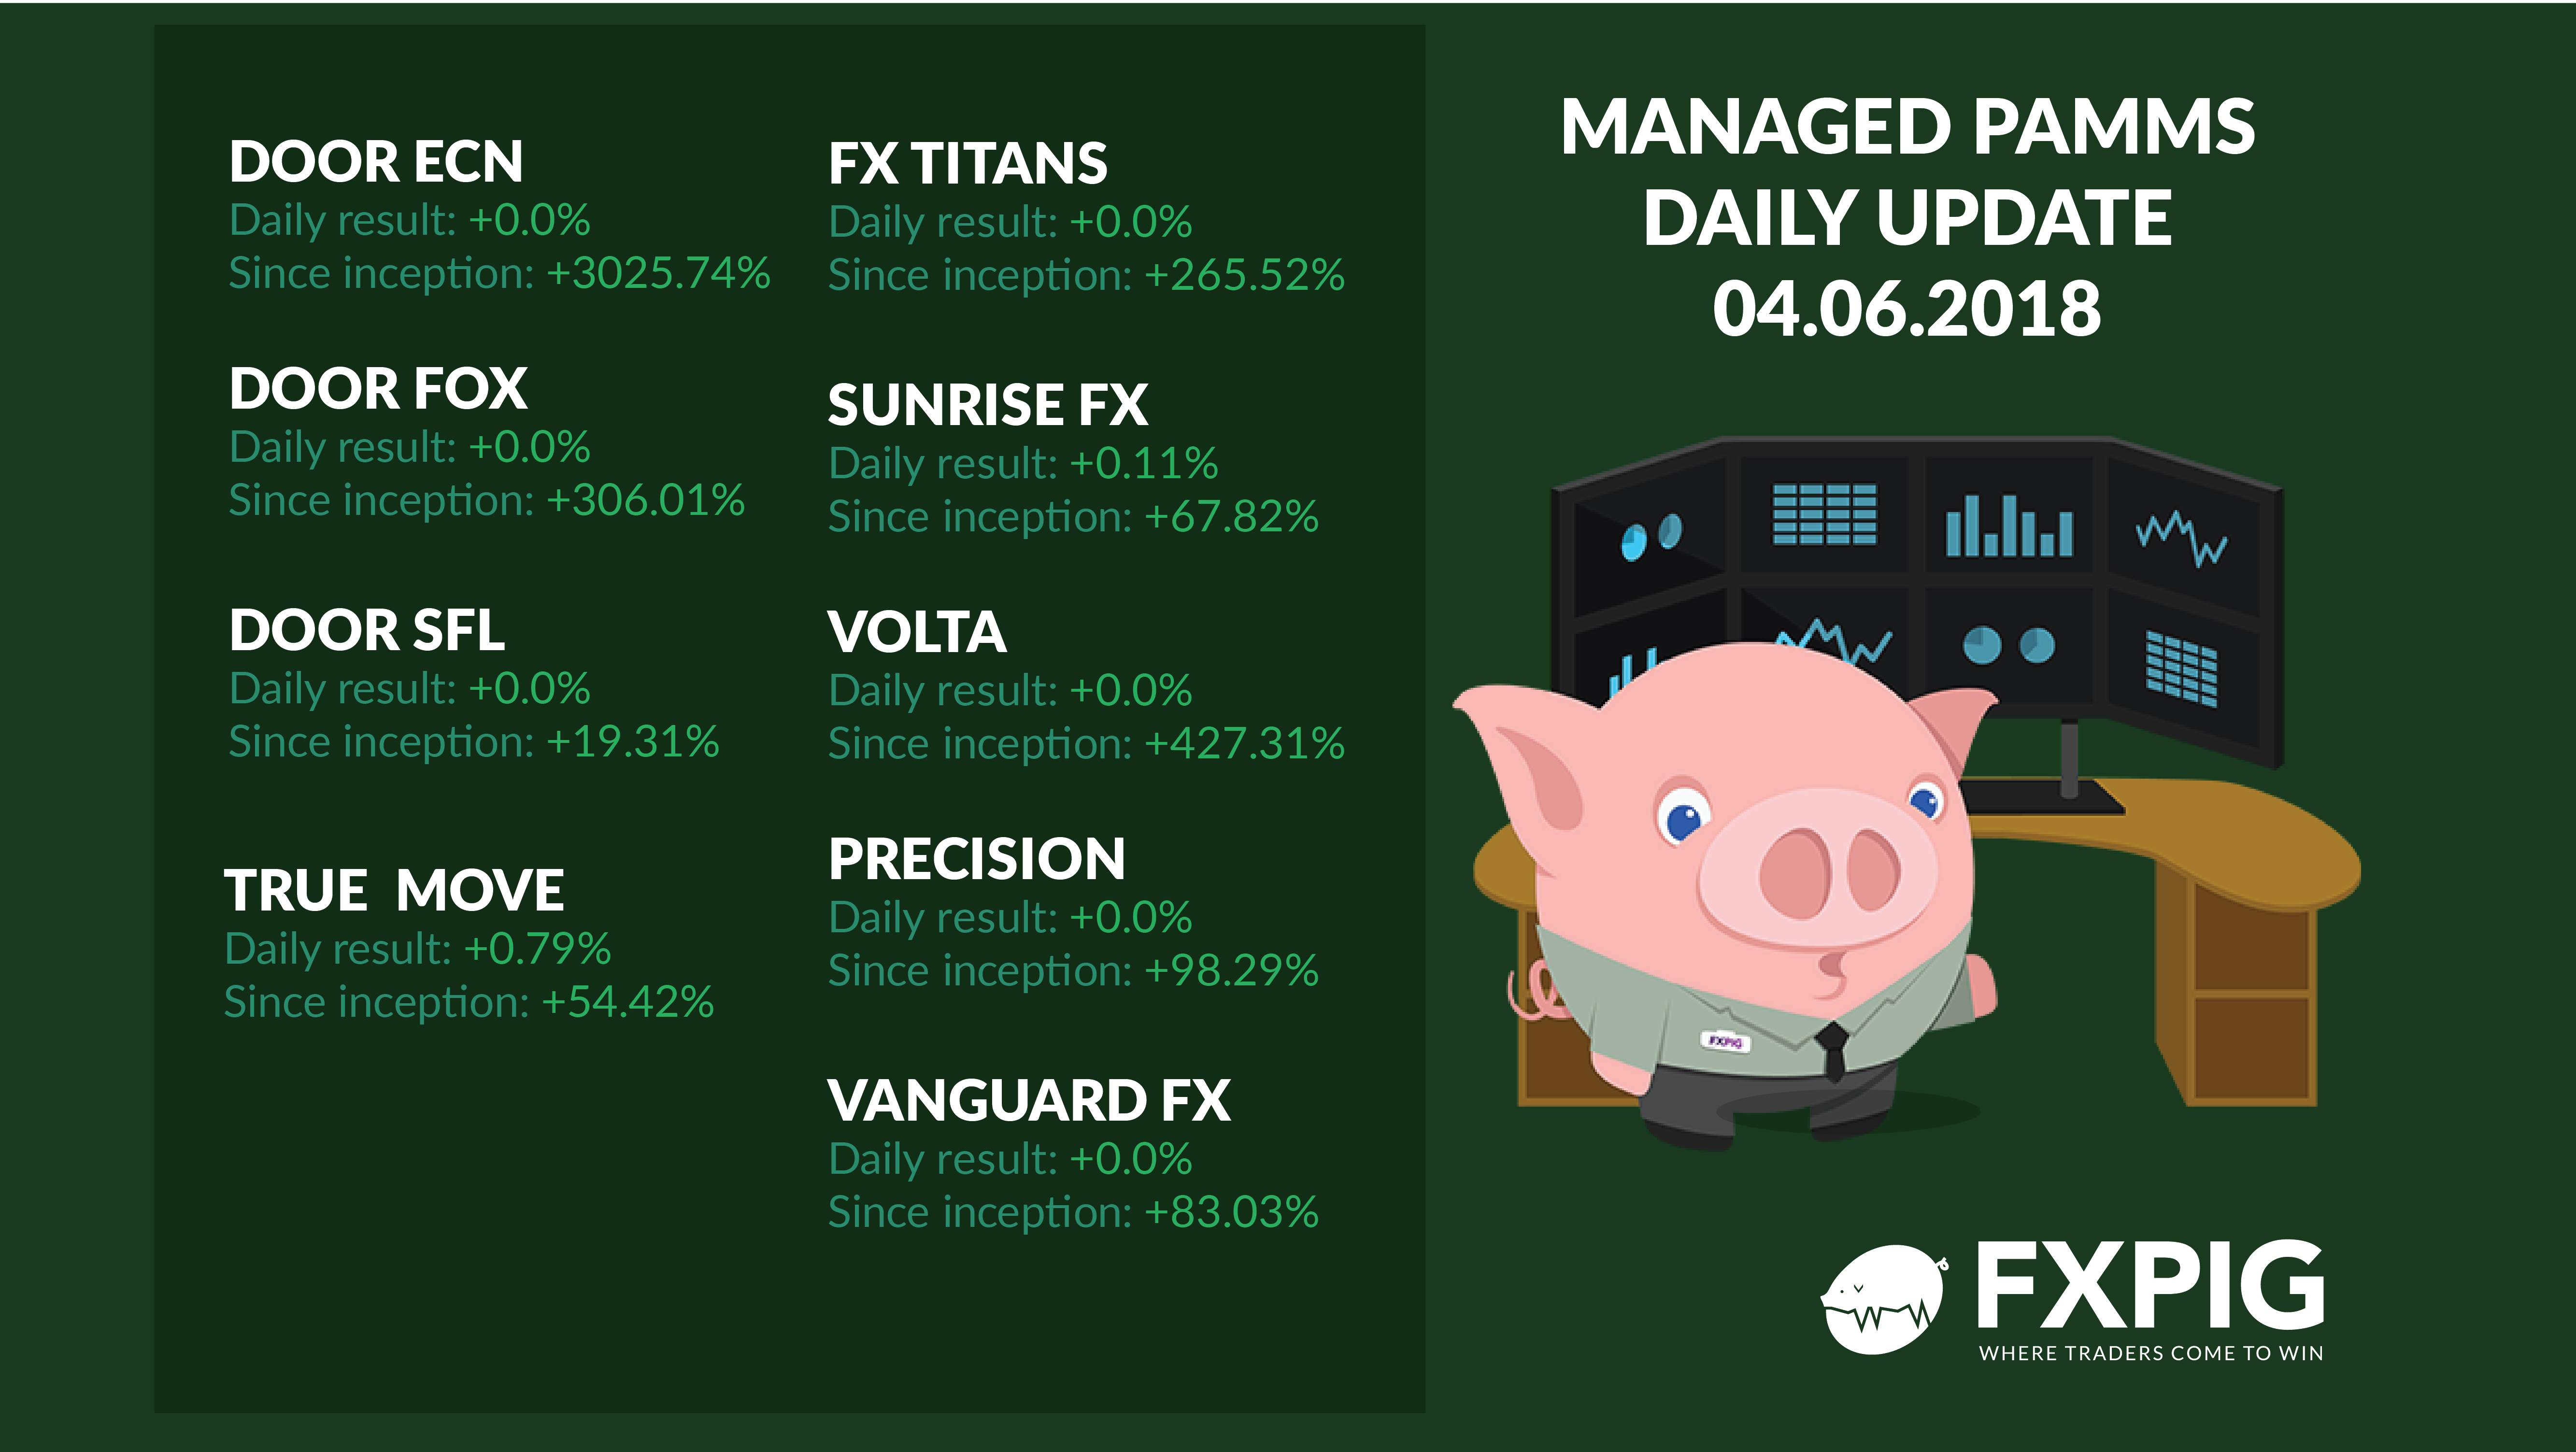 FOREX_daily-managed-accounts0406_FXPIG